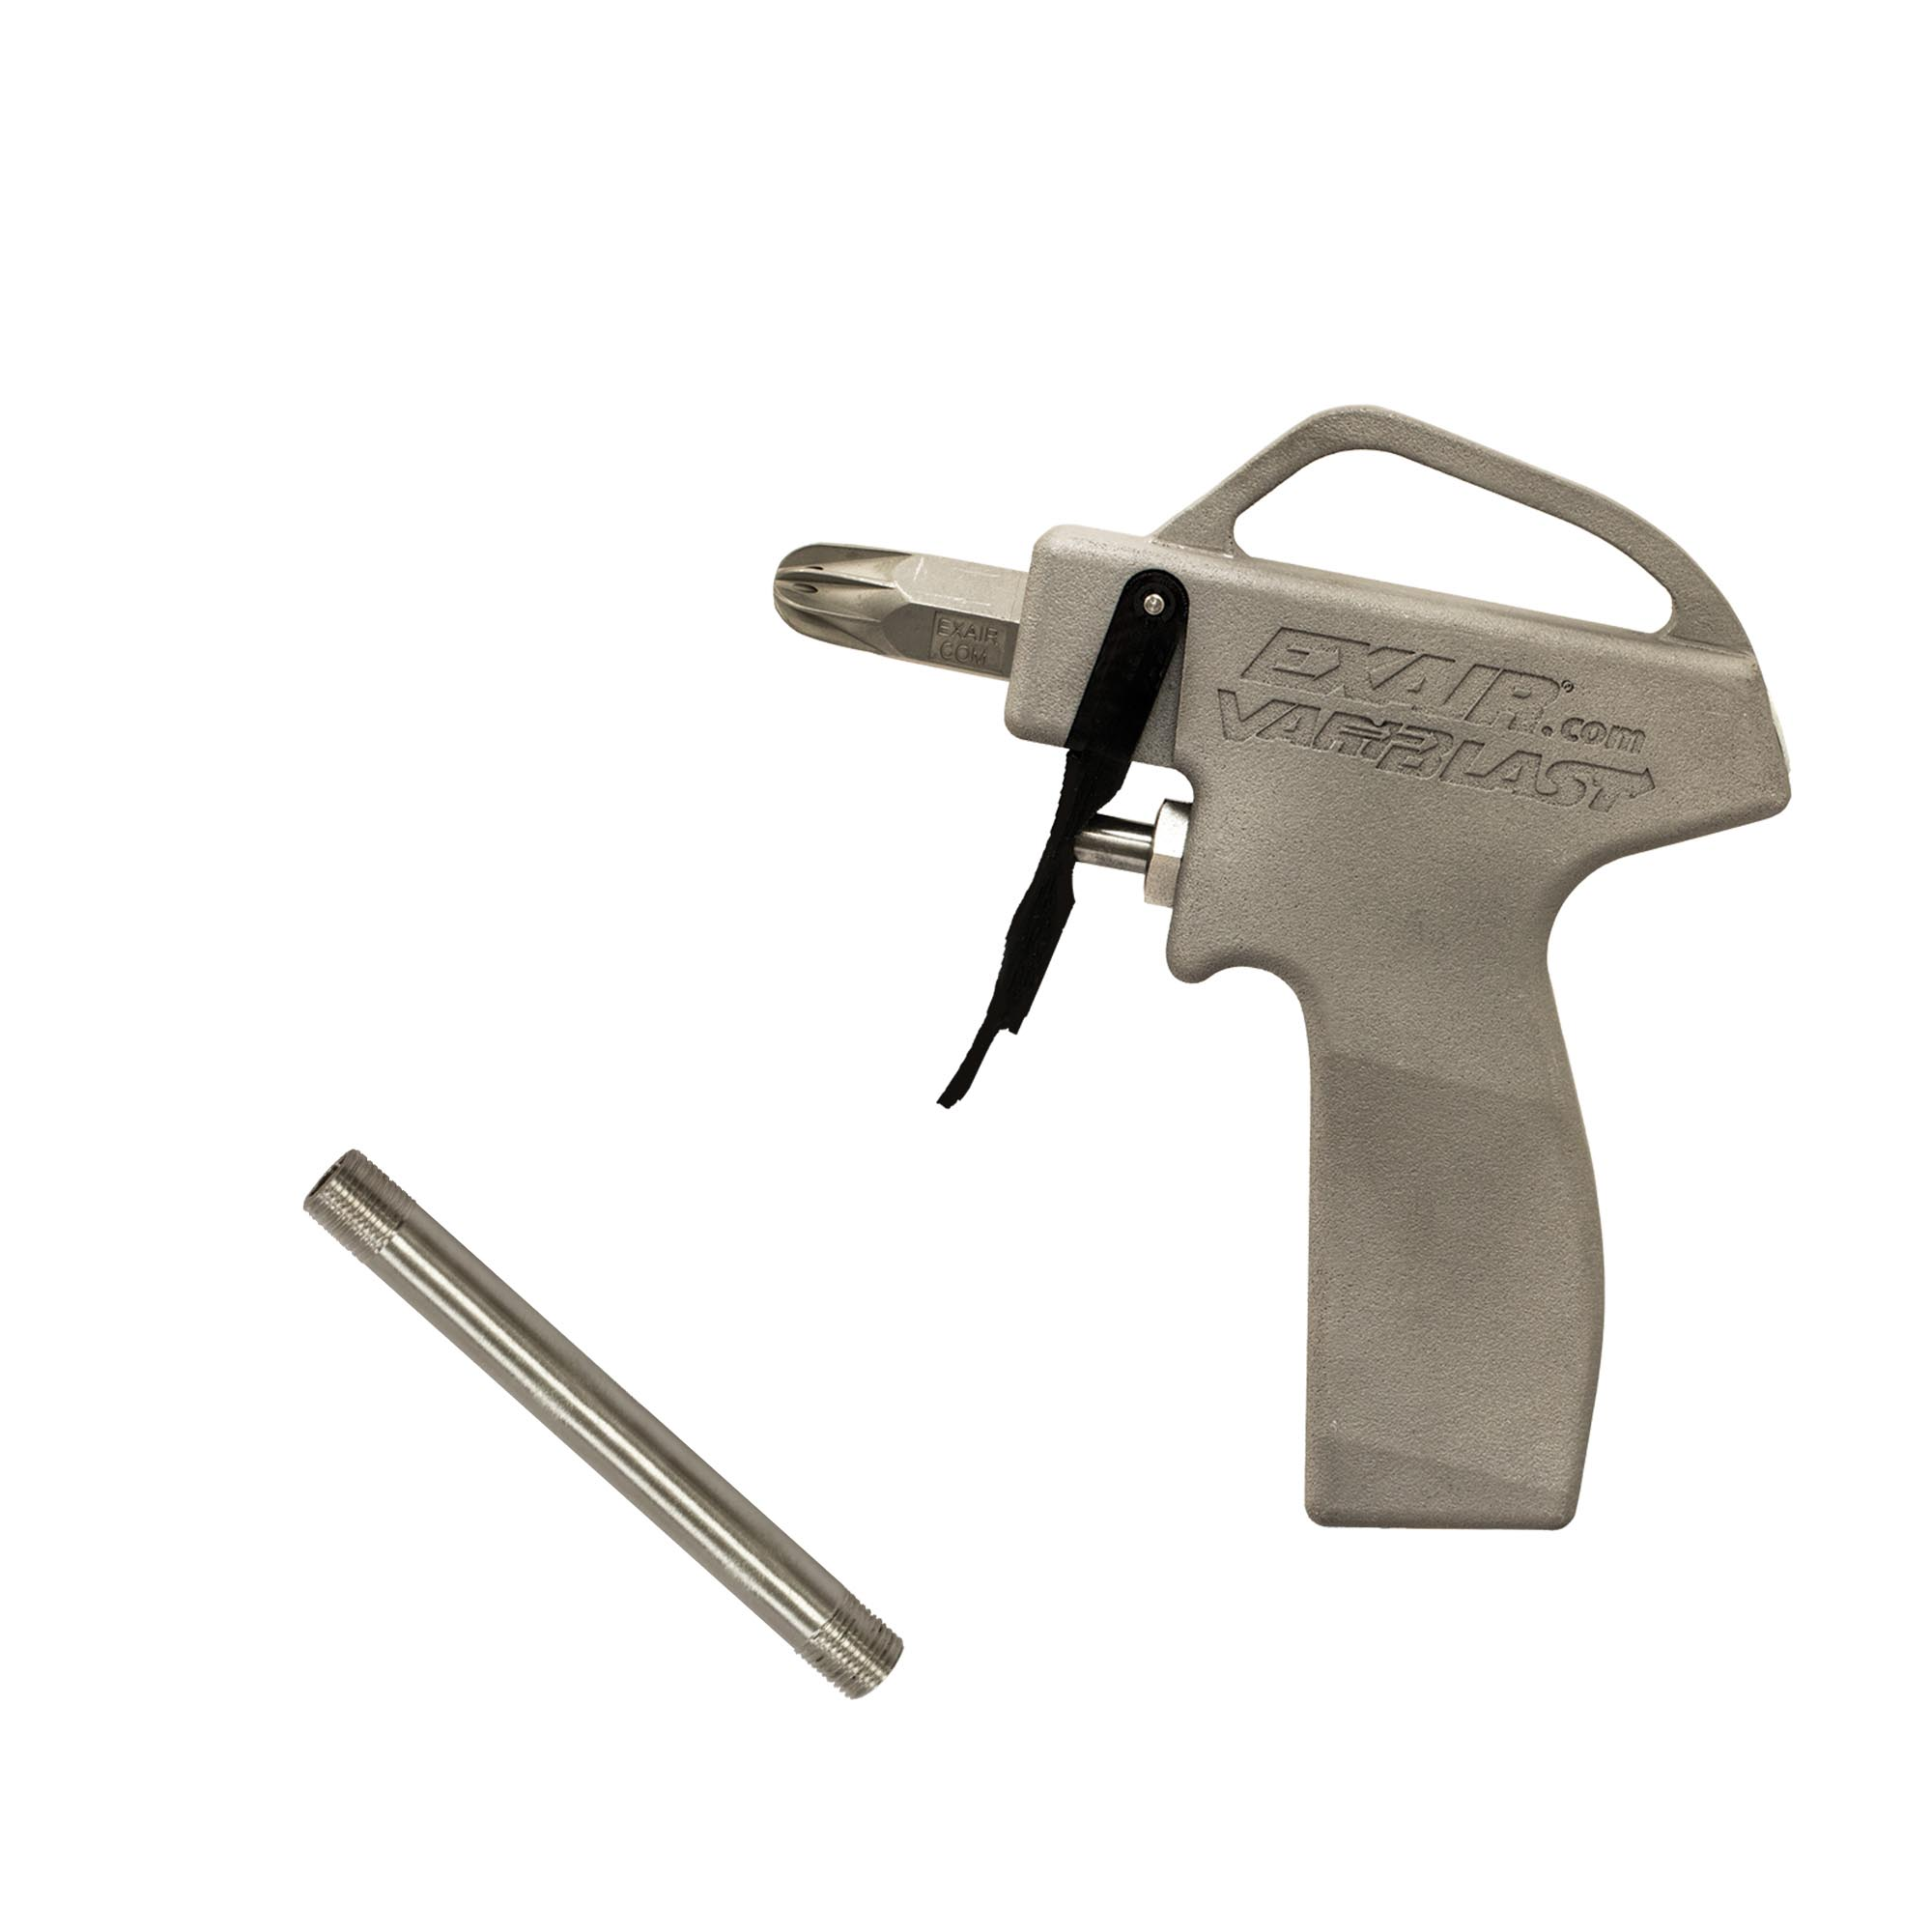 "VariBlast Compact Safety Air Guns are available with extension pipes up to 72"" long"